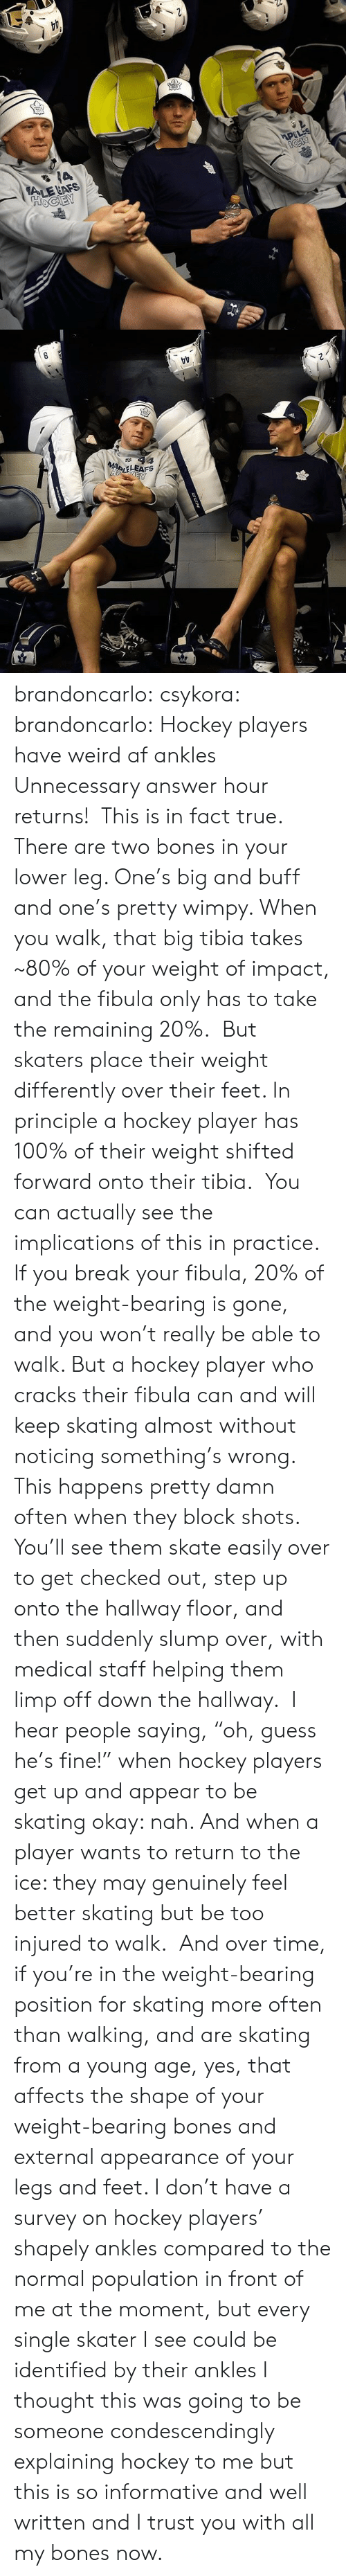 """I Trust You: brandoncarlo:  csykora:   brandoncarlo: Hockey players have weird af ankles Unnecessary answer hour returns! This is in fact true. There are two bones in your lower leg. One's big and buff and one's pretty wimpy. When you walk, that big tibia takes ~80% of your weight of impact, and the fibula only has to take the remaining 20%. But skaters place their weight differently over their feet. In principle a hockey player has 100% of their weight shifted forward onto their tibia. You can actually see the implications of this in practice. If youbreak your fibula, 20% of the weight-bearing is gone, and you won't really be able to walk. But a hockey player who cracks their fibula can and will keep skating almost without noticing something's wrong. This happens pretty damn often when they block shots. You'll see them skate easily over to get checked out, step up onto the hallway floor, and then suddenly slump over, with medical staff helping them limp off down the hallway. I hear people saying,""""oh, guess he's fine!"""" when hockey players get up and appear to be skating okay: nah. And when a player wants to return to the ice: they may genuinely feel better skating but be too injured to walk. And over time, if you're in the weight-bearing position for skating more often than walking, and are skating from a young age, yes, that affects the shape of your weight-bearing bones and external appearance of your legs and feet. I don't have a survey on hockey players' shapely ankles compared to the normal population in front of me at the moment, but every single skater I see could be identified by their ankles   I thought this was going to be someone condescendingly explaining hockey to me but this is so informative and well written and I trust you with all my bones now."""